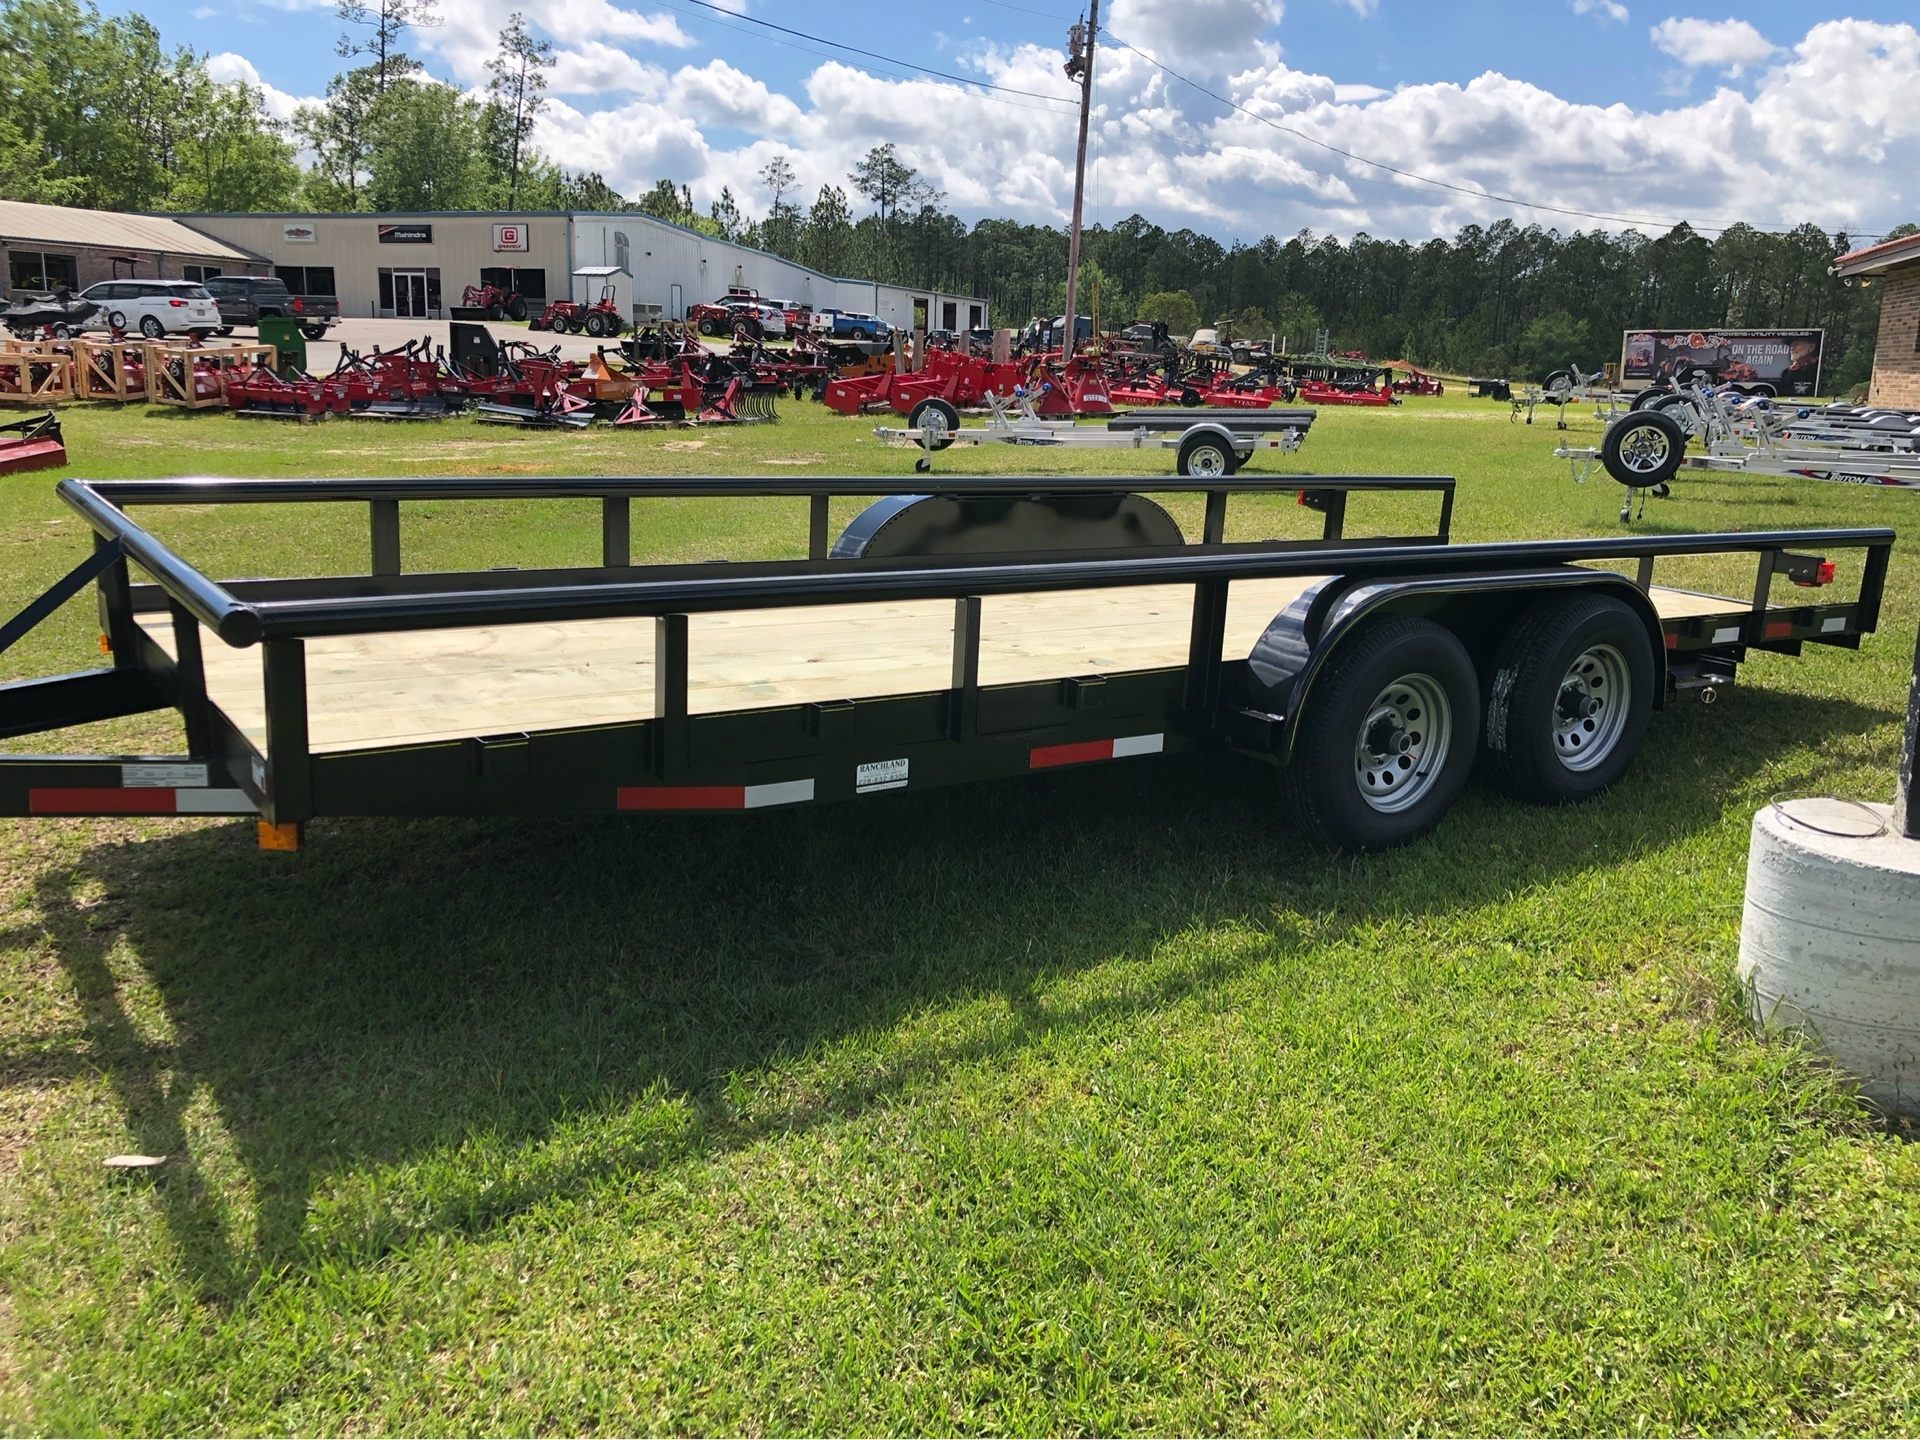 2019 Ranchland Trailers 7x20 Big Pipe, 10K, SIR, Brakes in Saucier, Mississippi - Photo 1